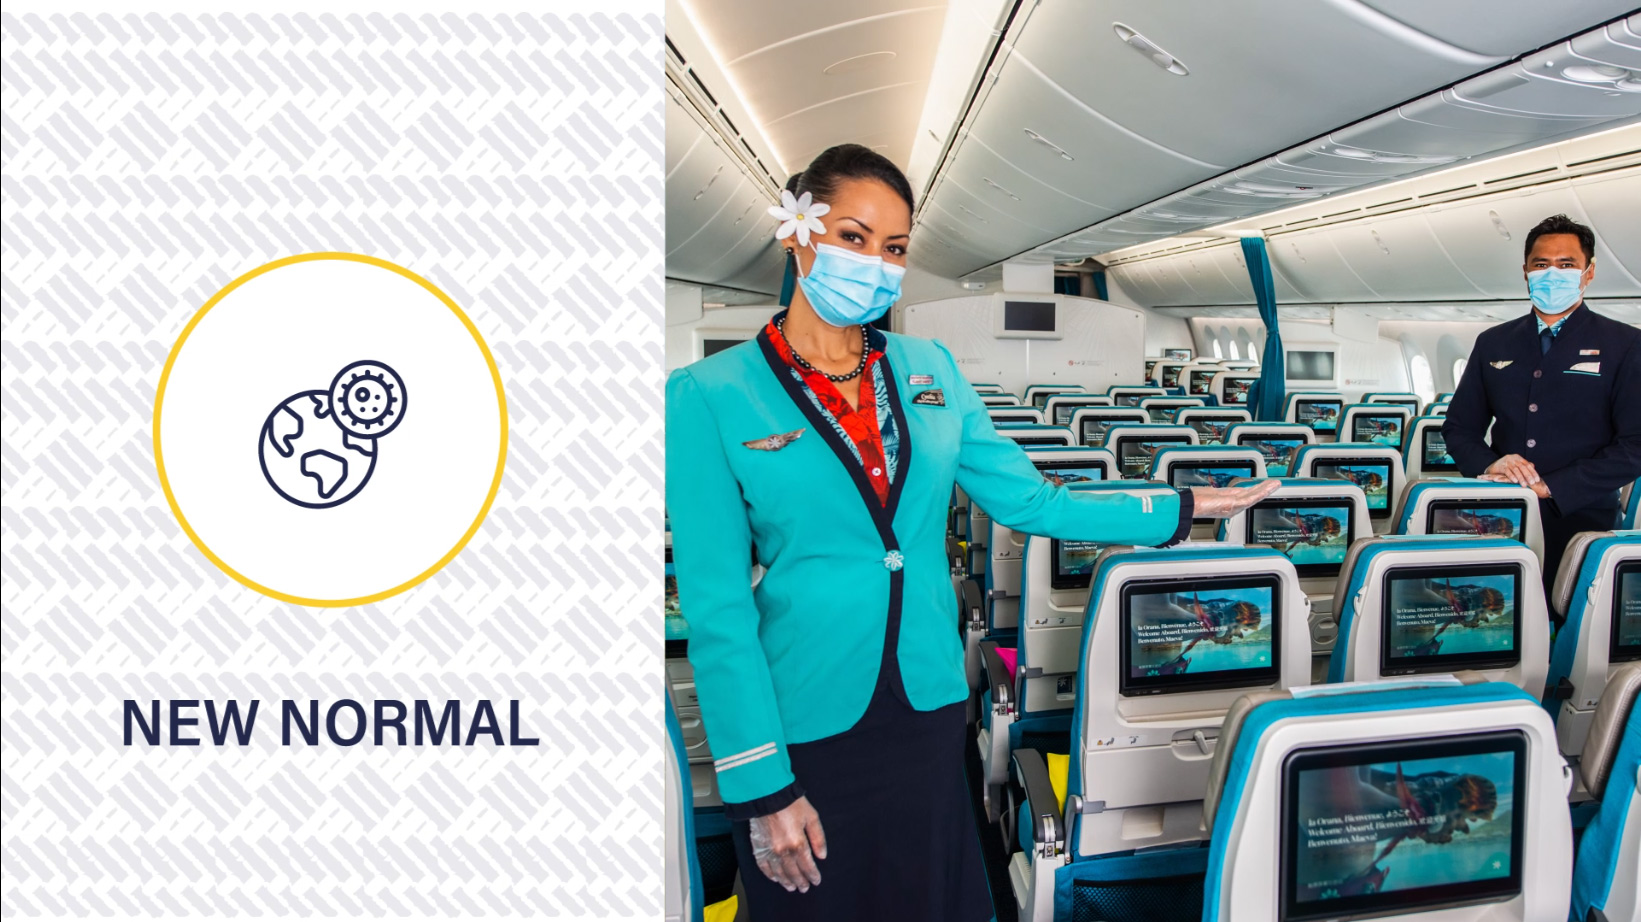 The impact of the COVID-19 pandemic on the Pacific's aviation sector is explored in PASO's new video. Credit: PASO.aero